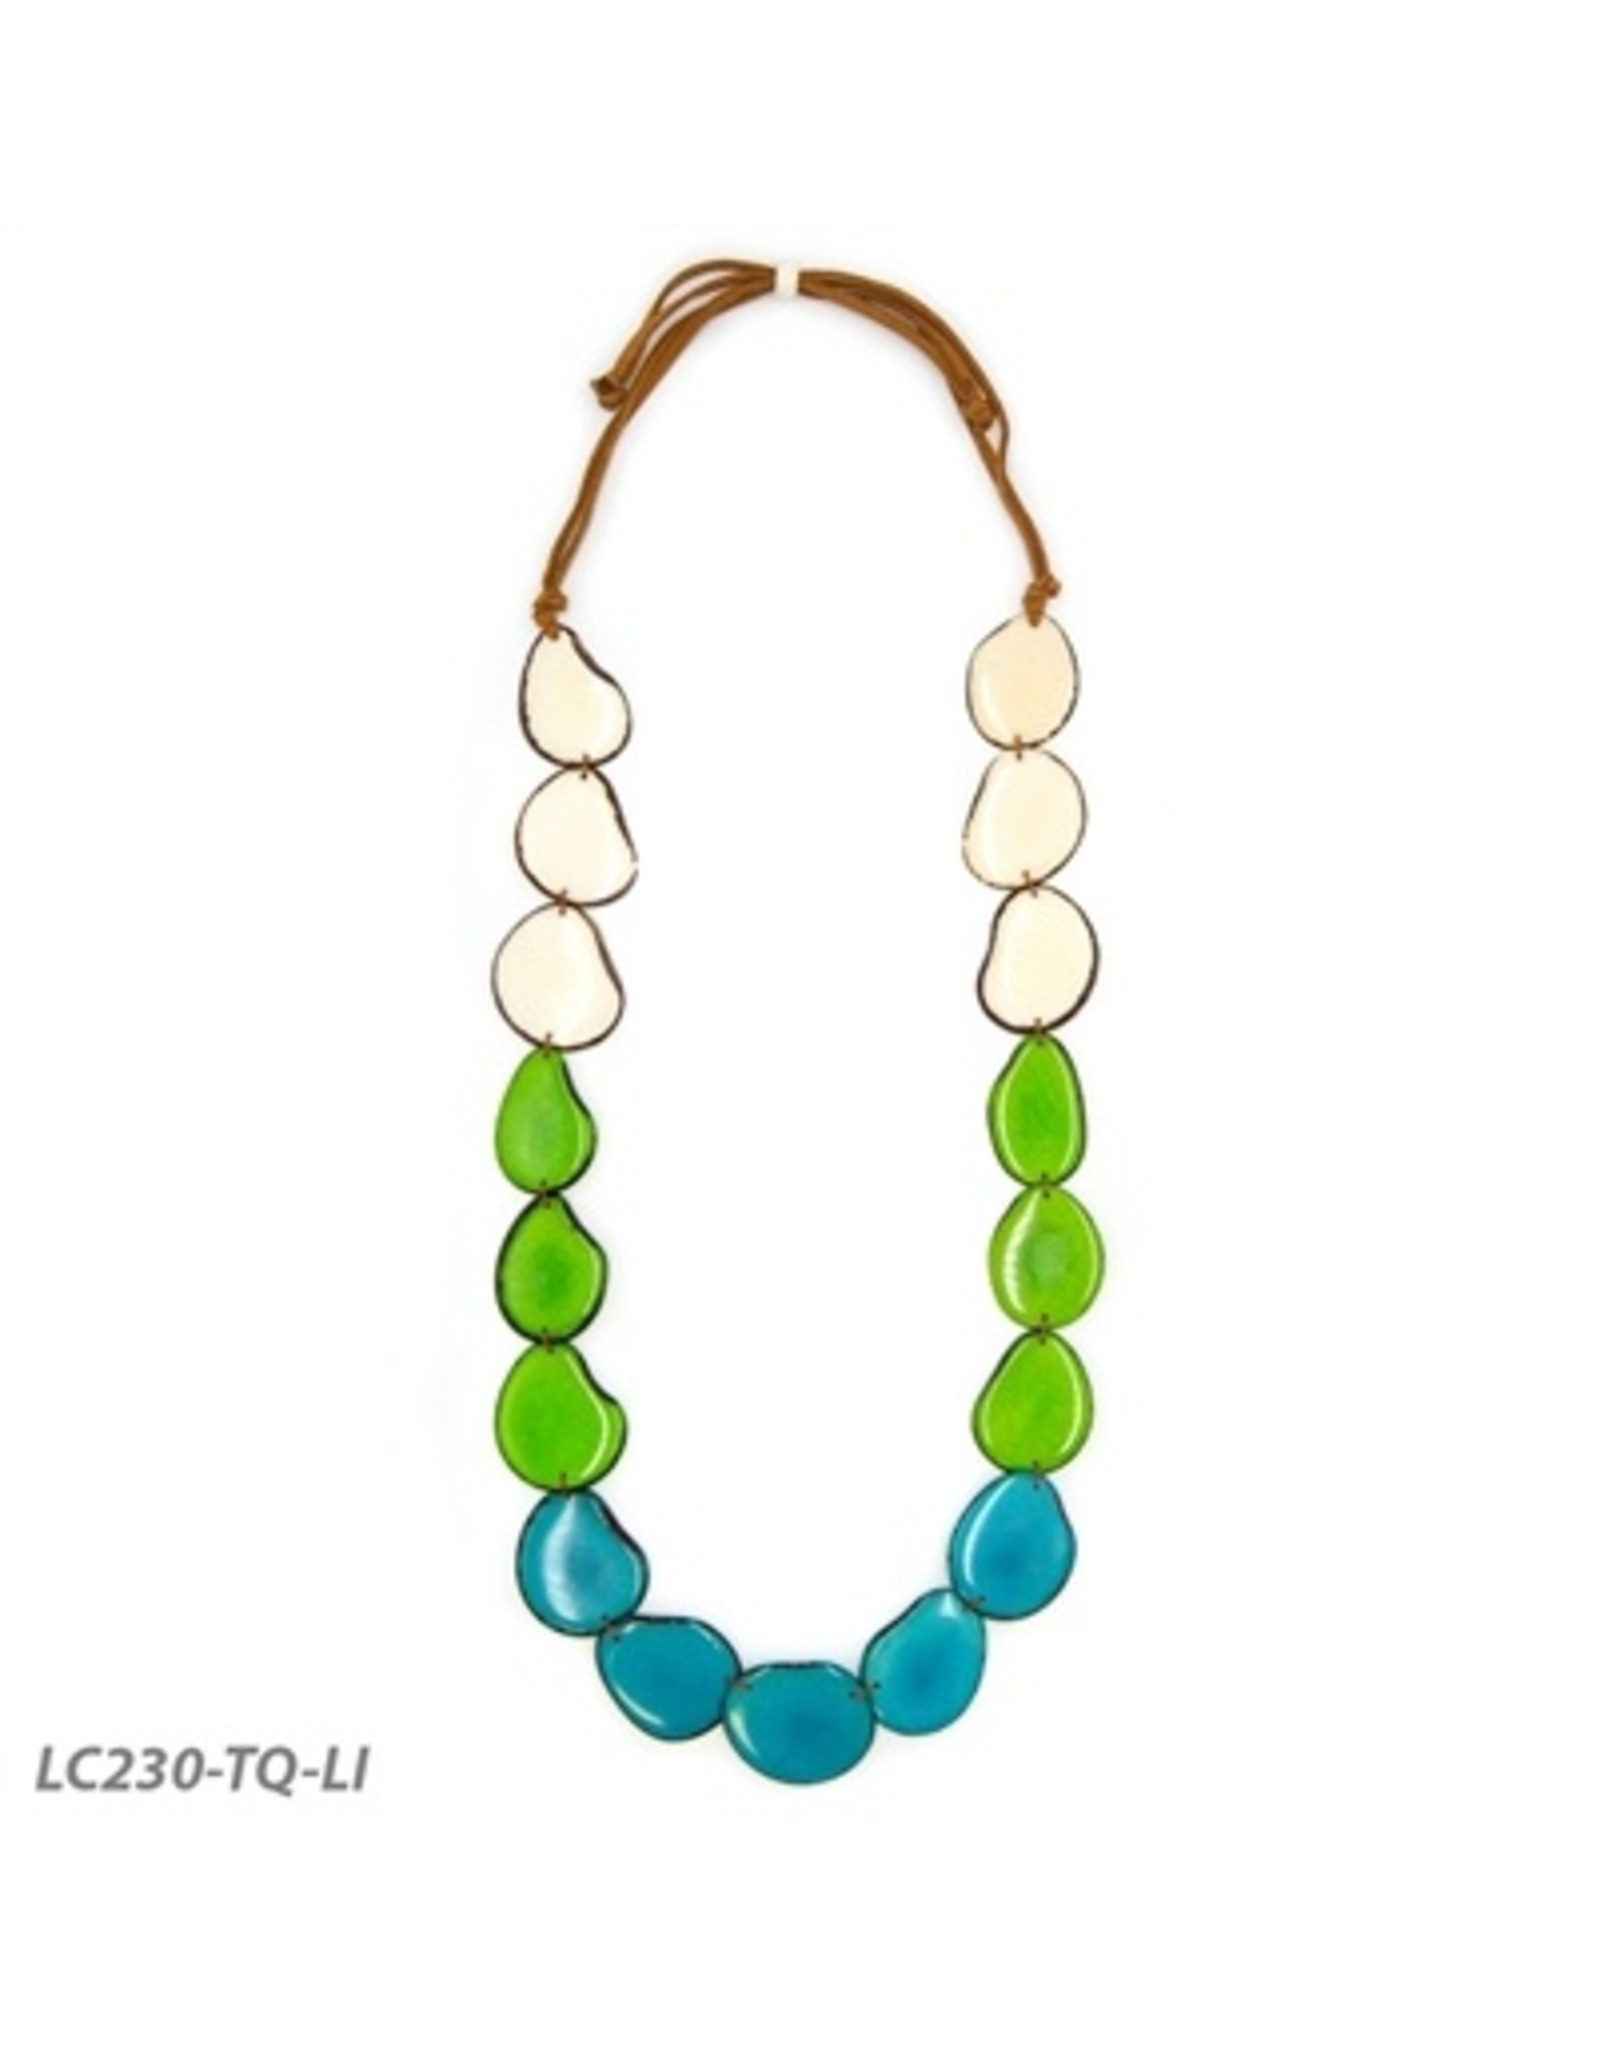 Tagua LC230-TQ-LI Angelina Necklace in Turquoise and Lime